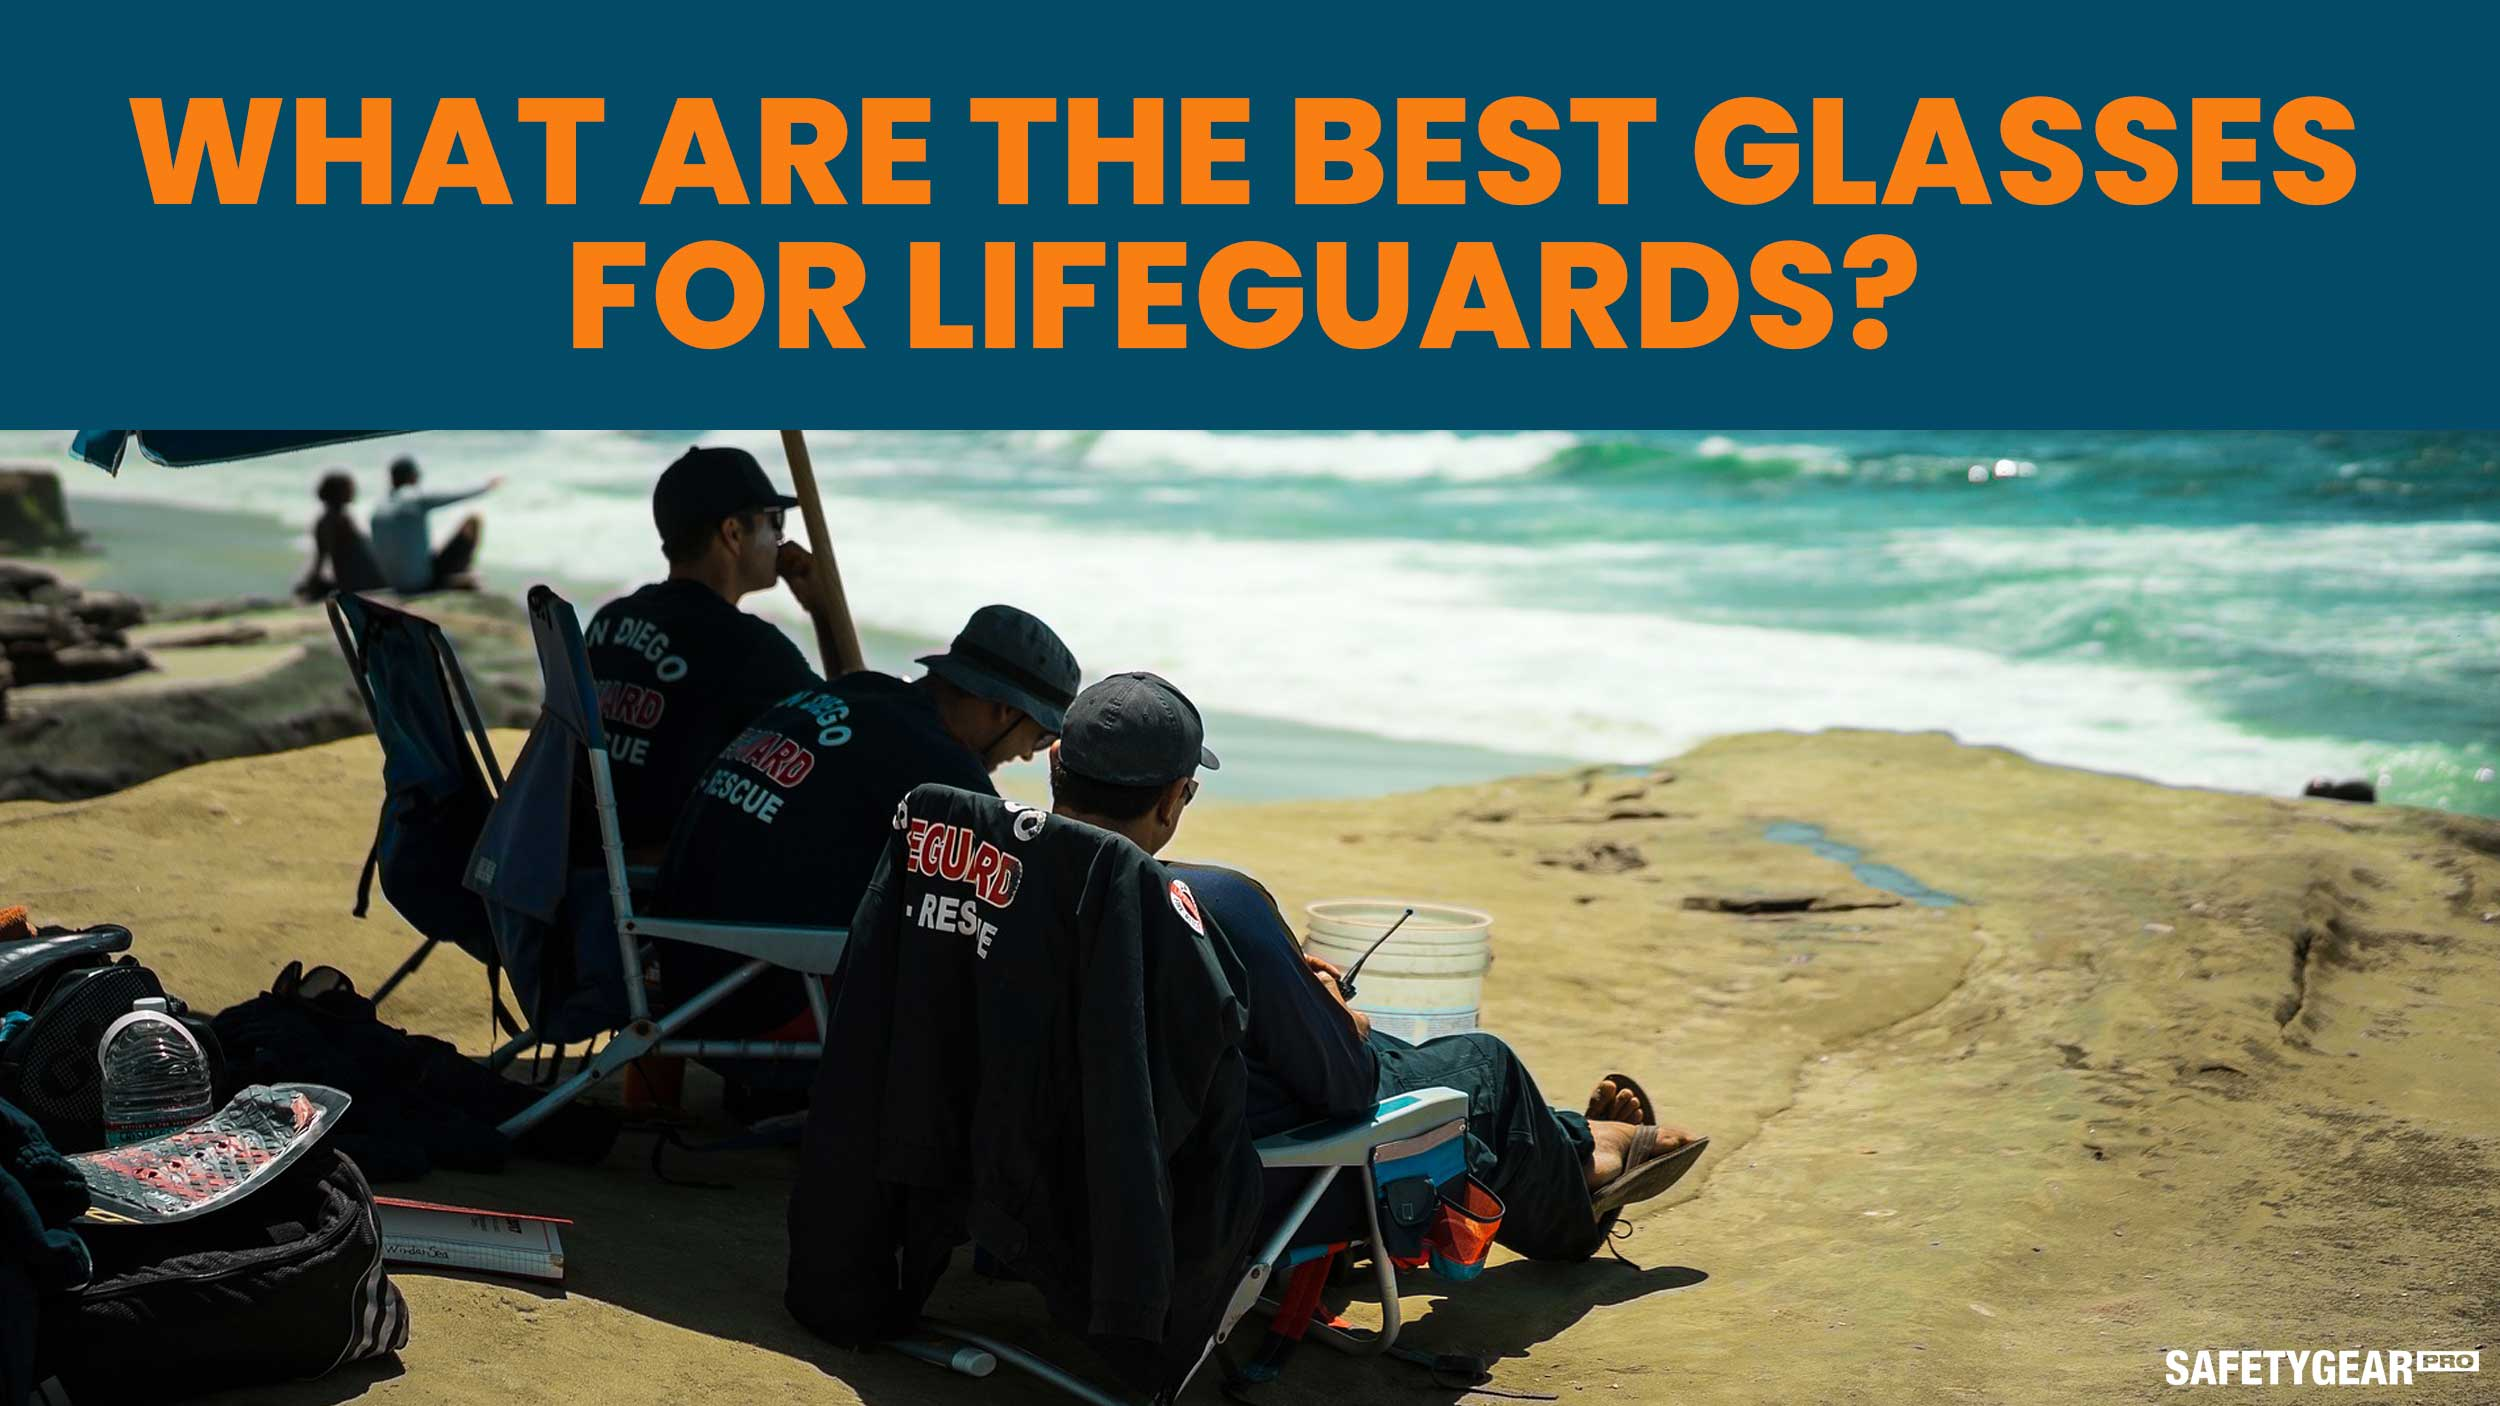 What are the best glasses for lifeguards?